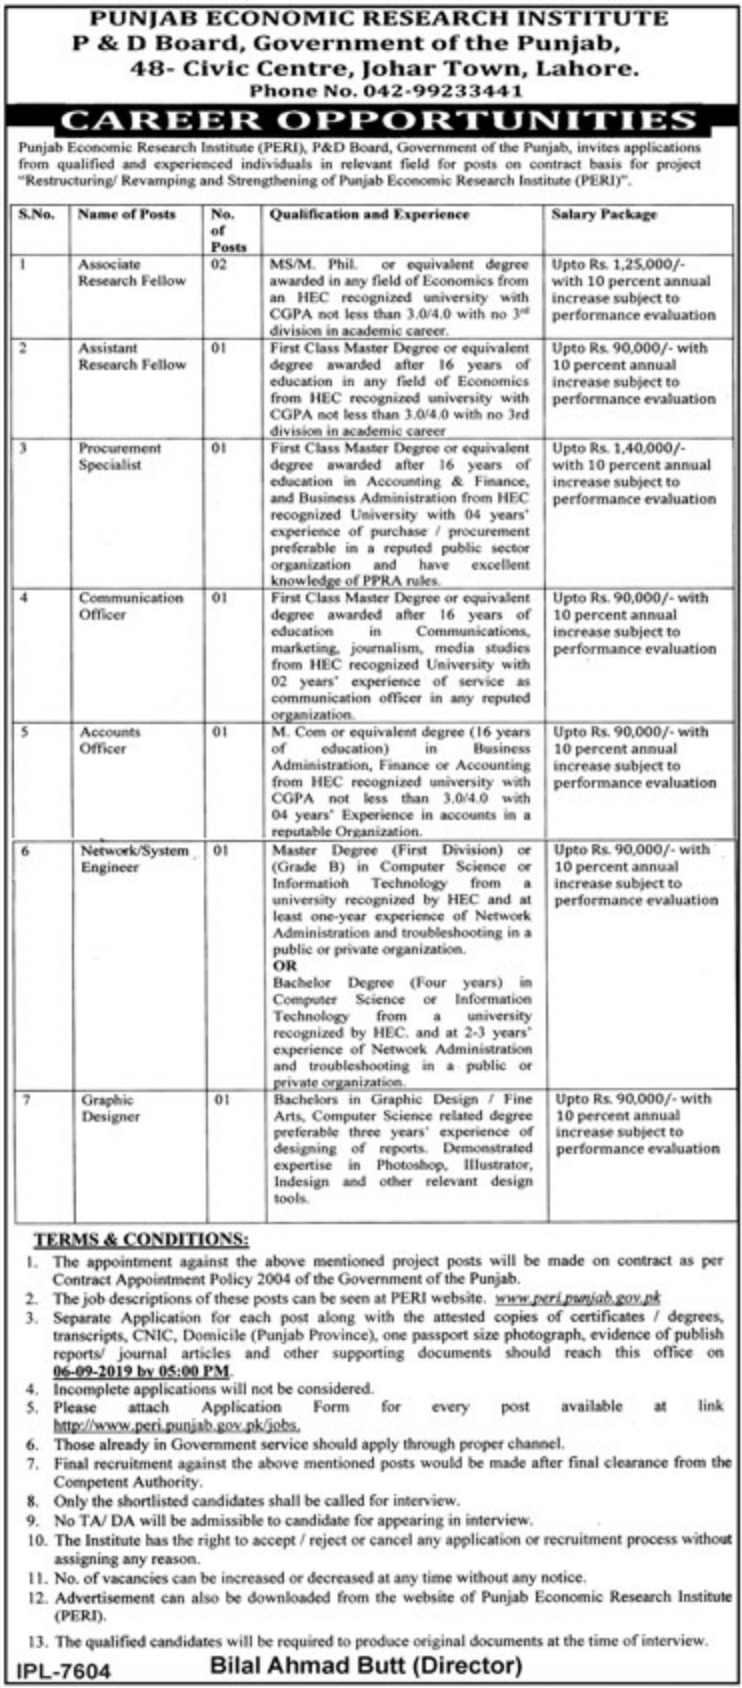 Punjab Economic Research Institute P&D Board Government of Punjab Jobs 2019